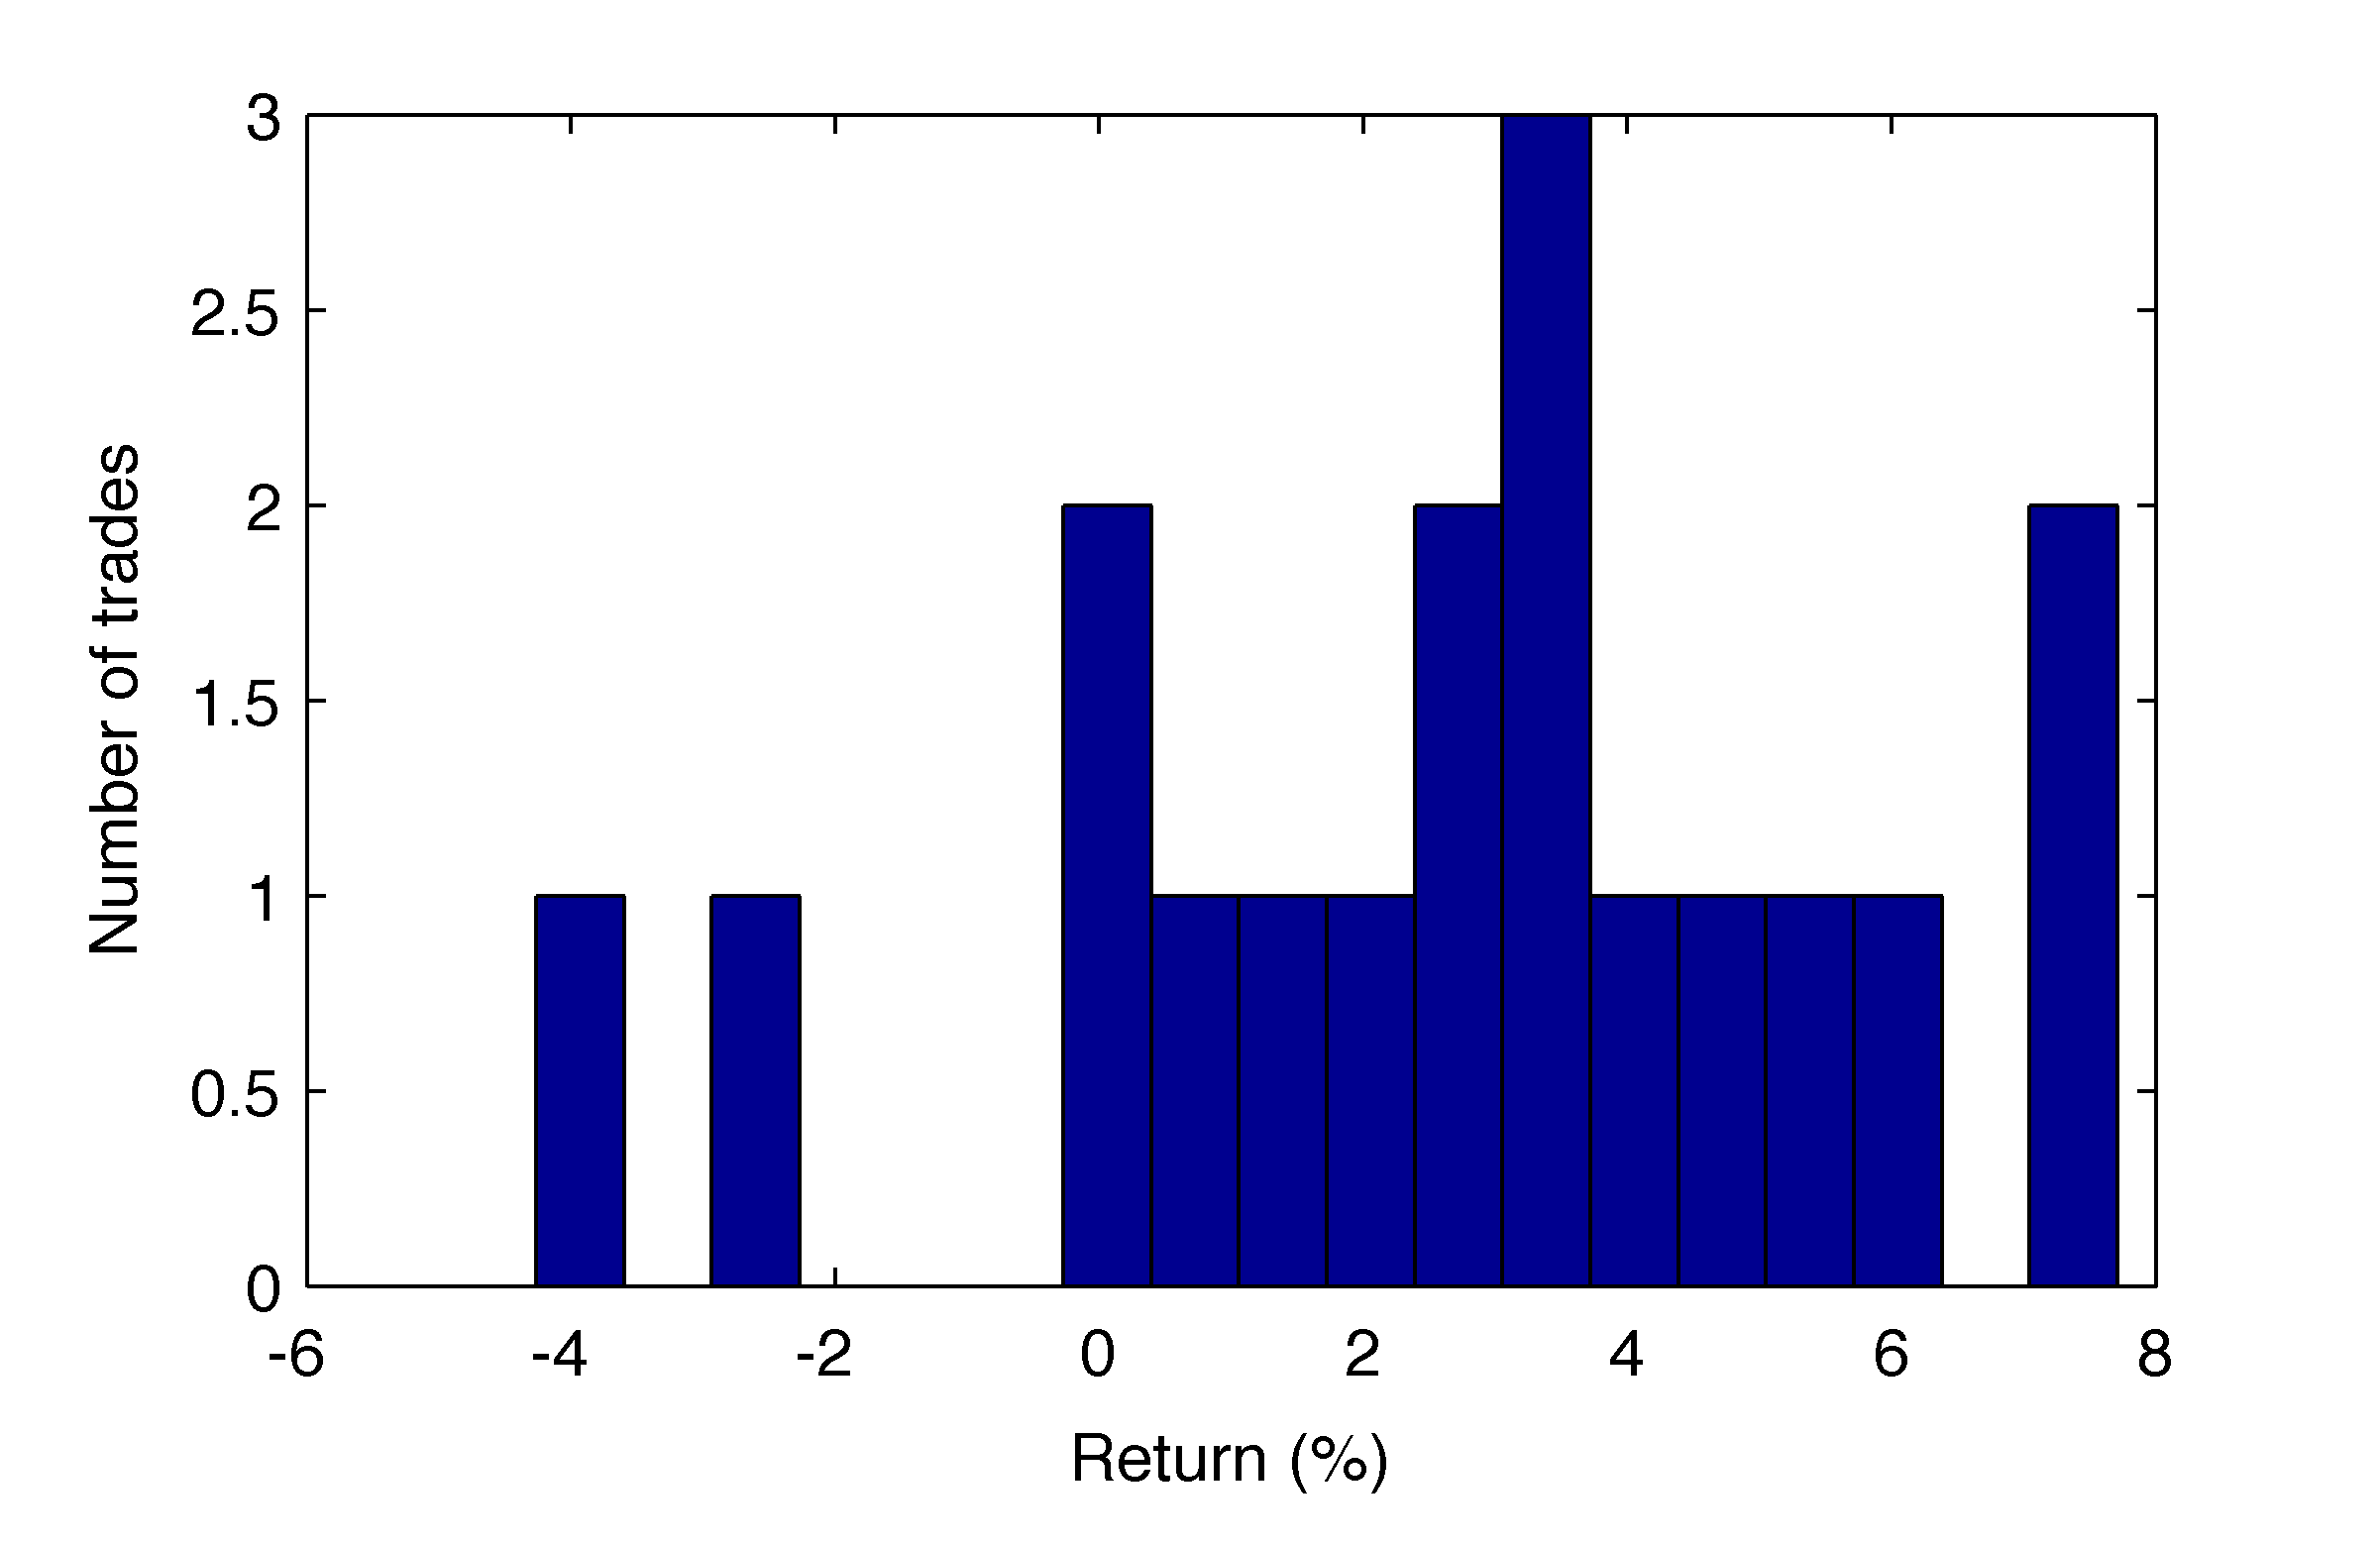 Spy Stock Quote Yahoo Stock Data In Matlab And A Model For Dividend Backtesting